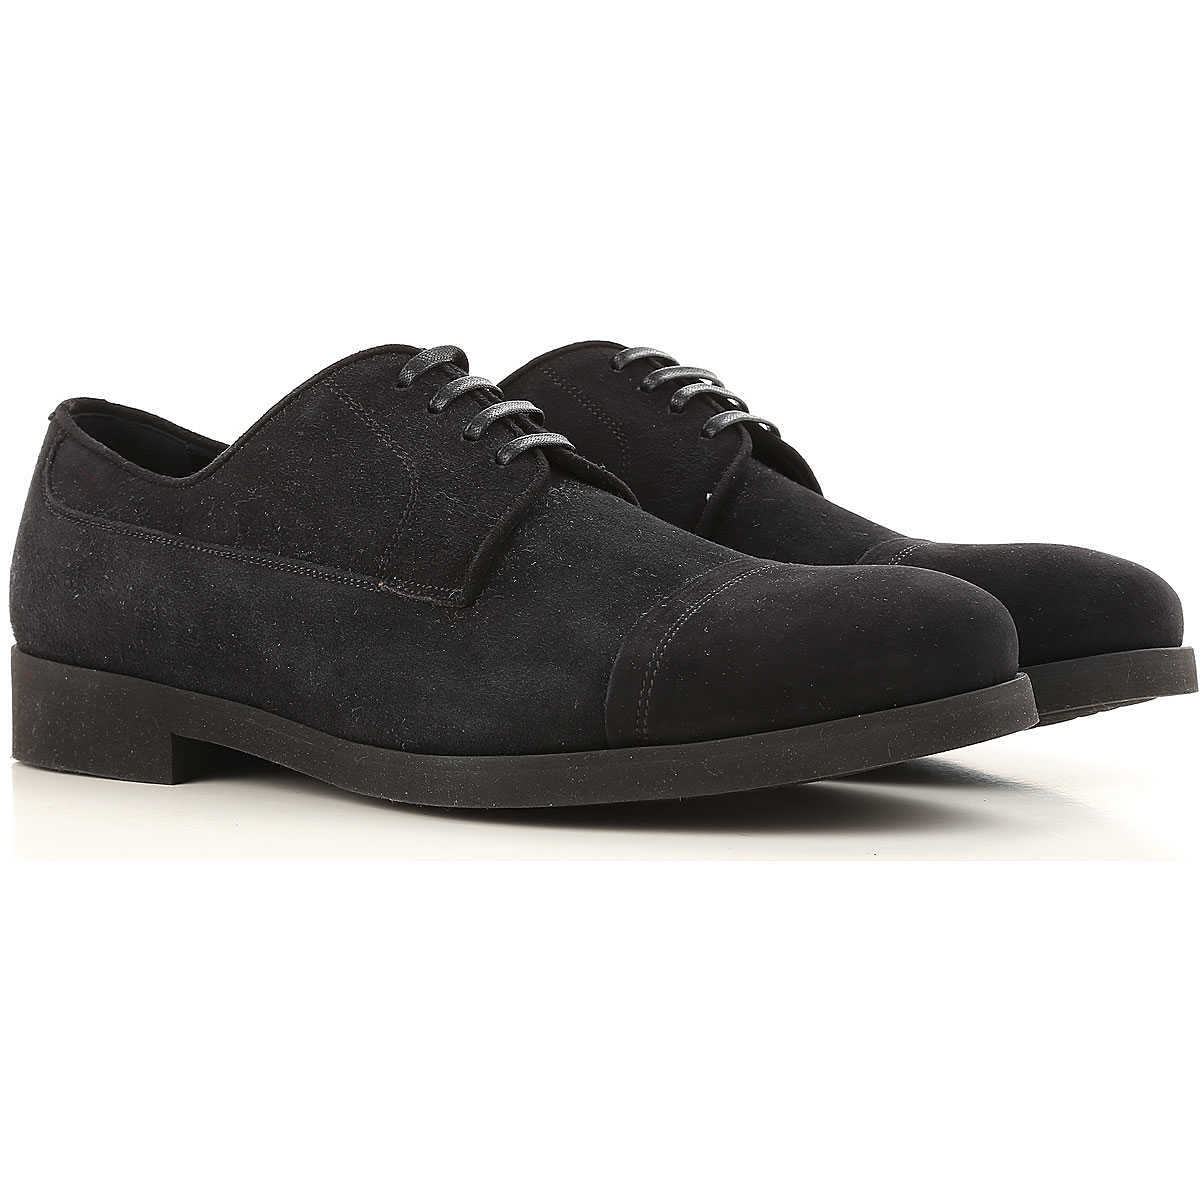 Dolce & Gabbana Lace Up Shoes for Men Oxfords 5.5 7.5 Derbies and Brogues On Sale in Outlet UK - GOOFASH